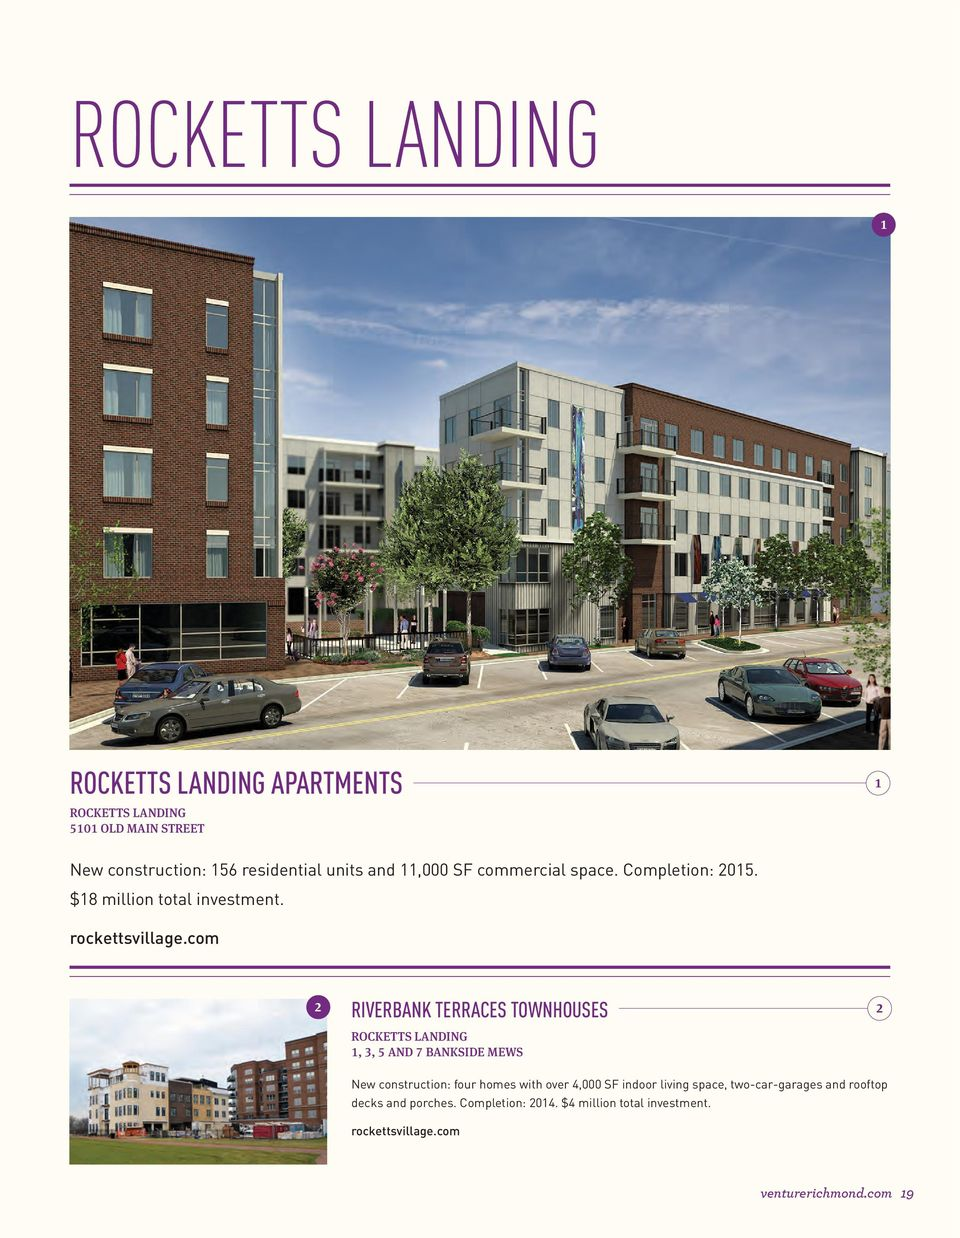 com riverbank terraces townhouses rocketts LAndIng, 3, 5 And 7 BAnkSIde MeWS New construction: four homes with over 4,000